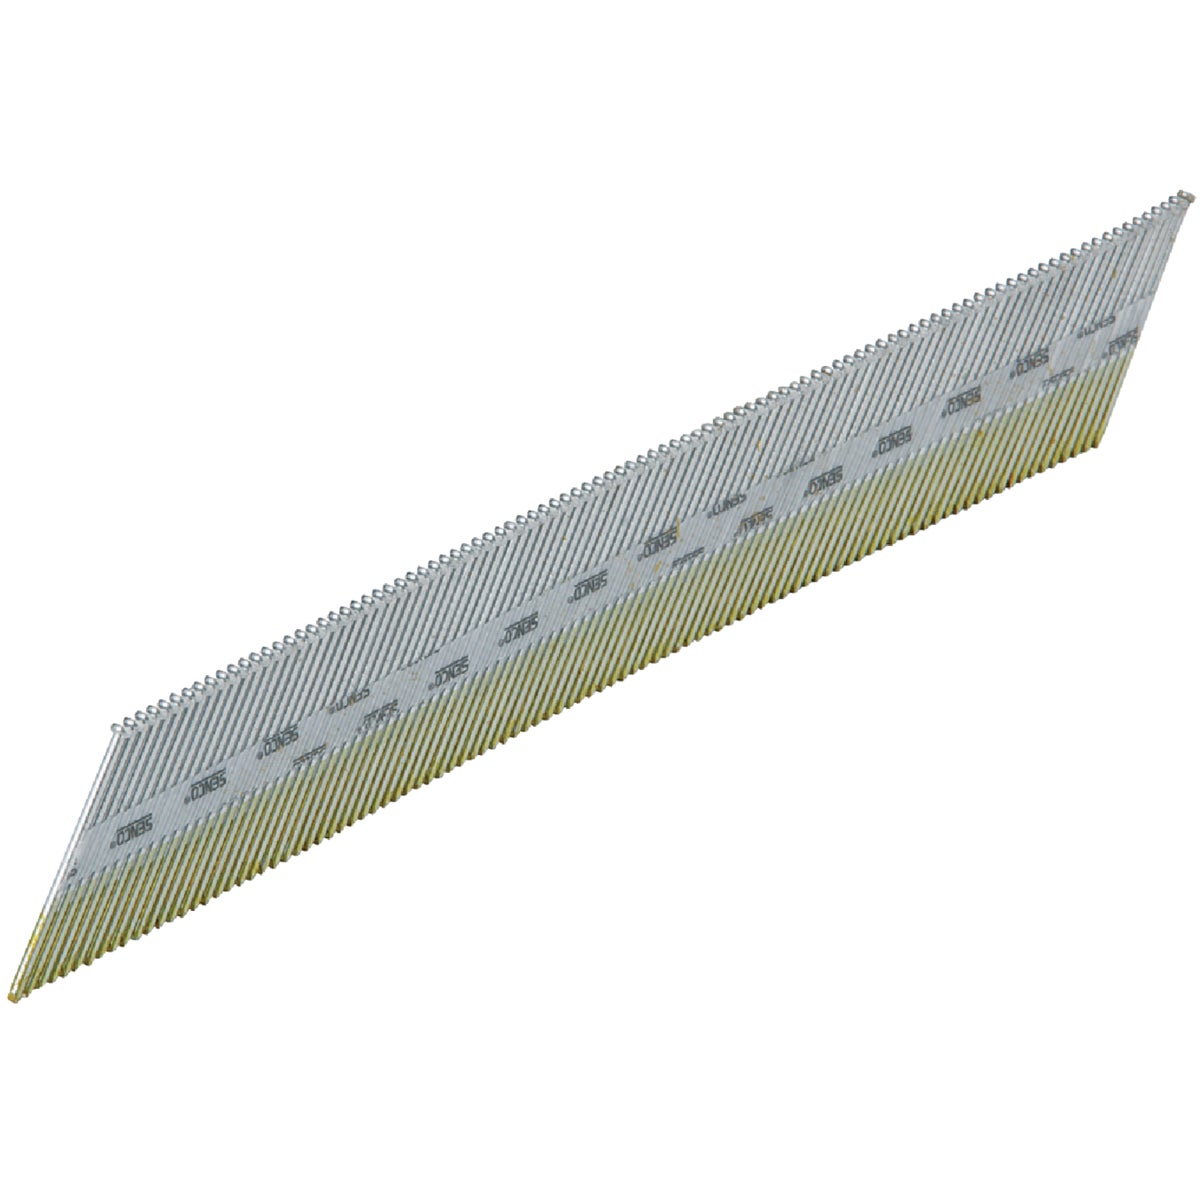 "15G X 1-1/2"" FINISH NAIL - A301500 by Senco Brands"